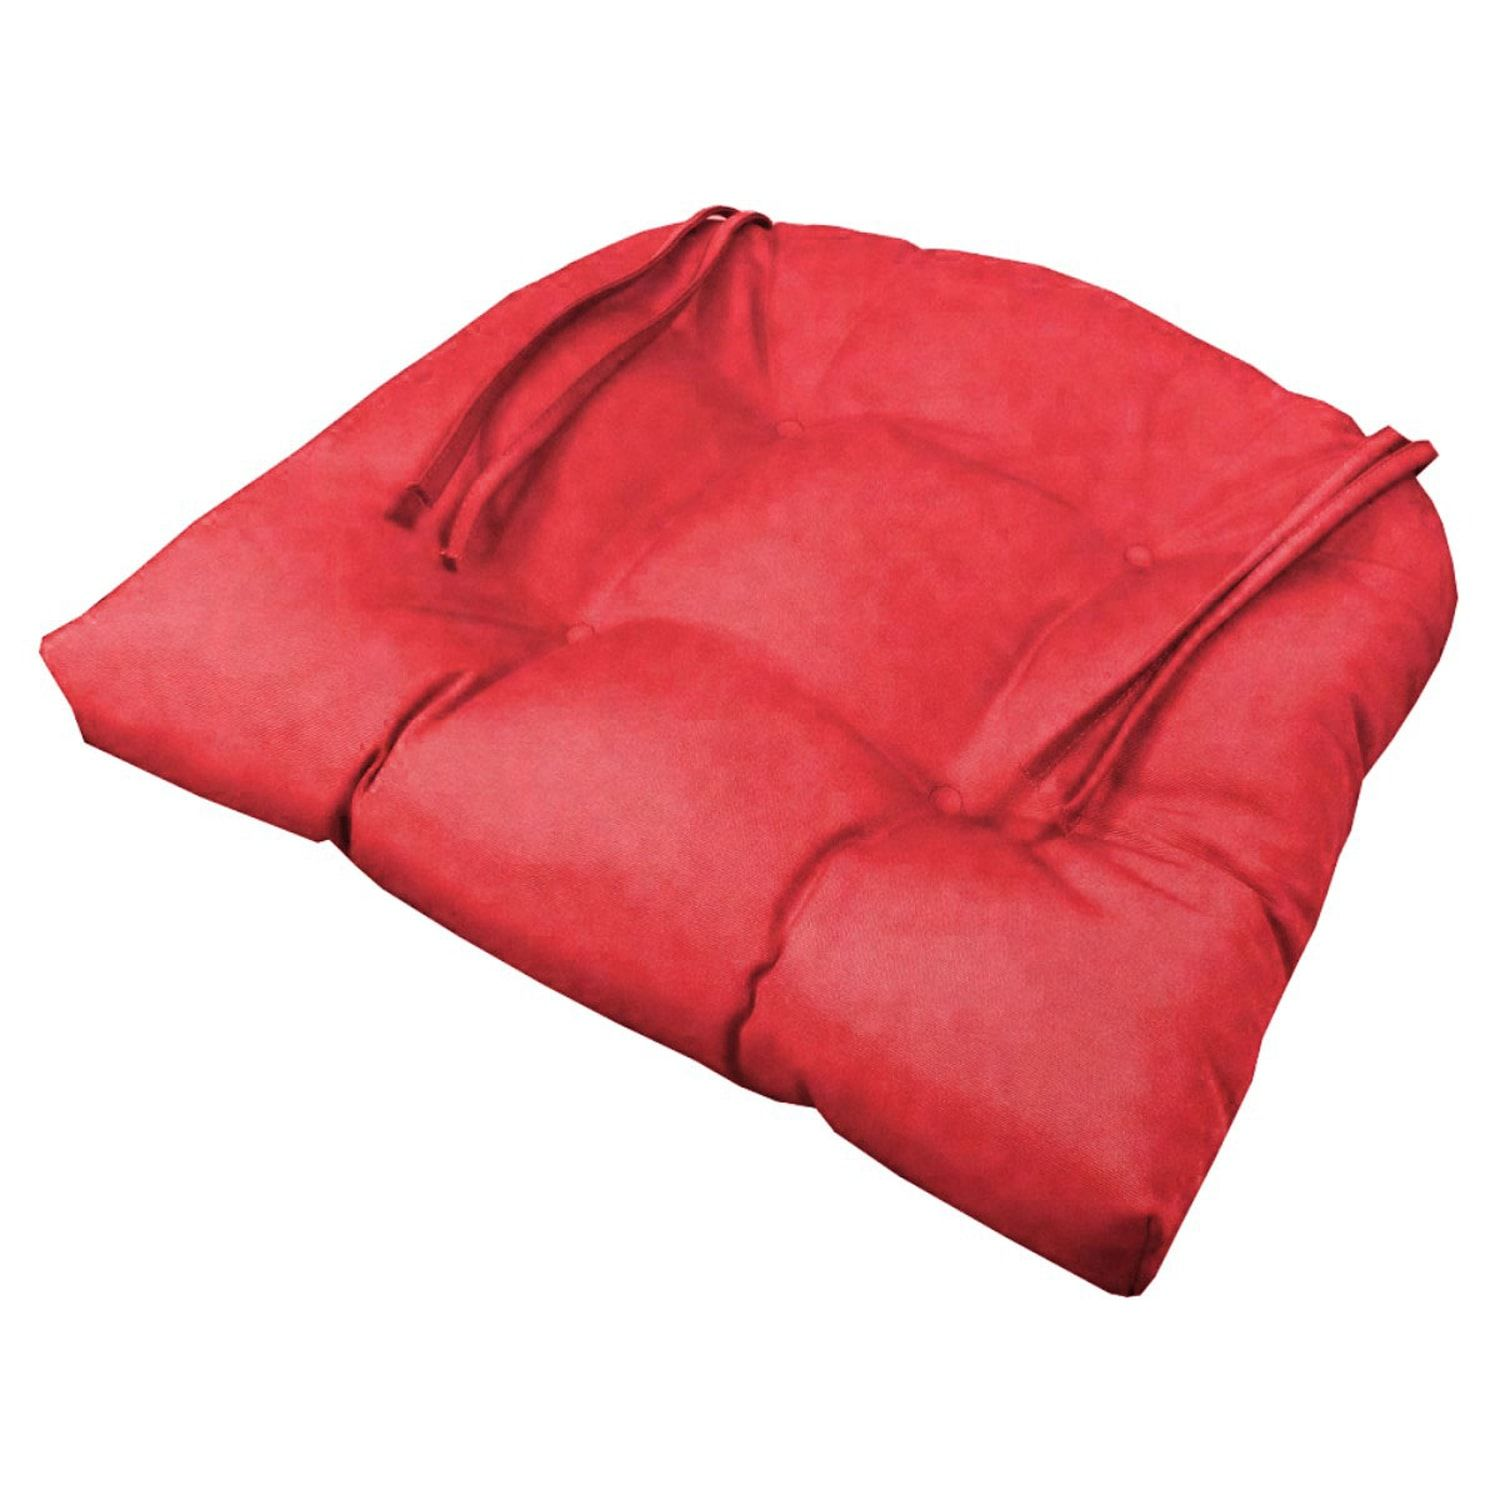 20 Tufted Chair Cushion In Canvas Jockey Red Products Chair Tufted Chair Chair Cushions